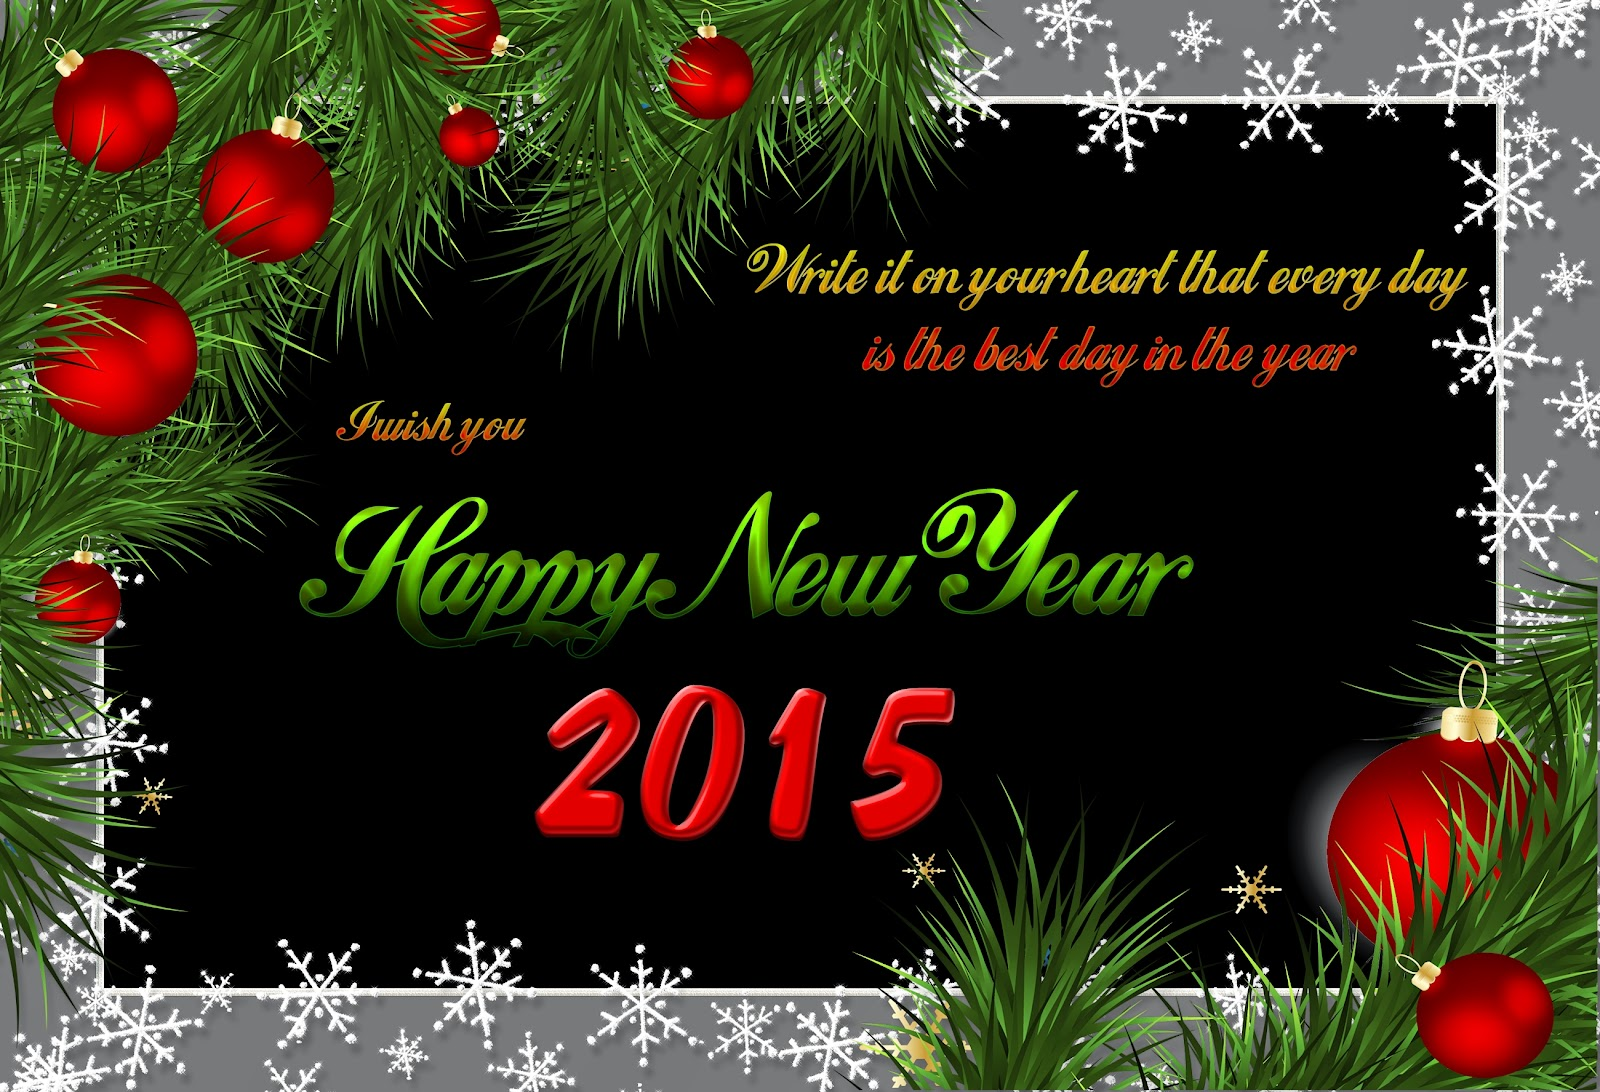 Beautiful Happy New Year Wishes eCards 2015 Royalty Free Images